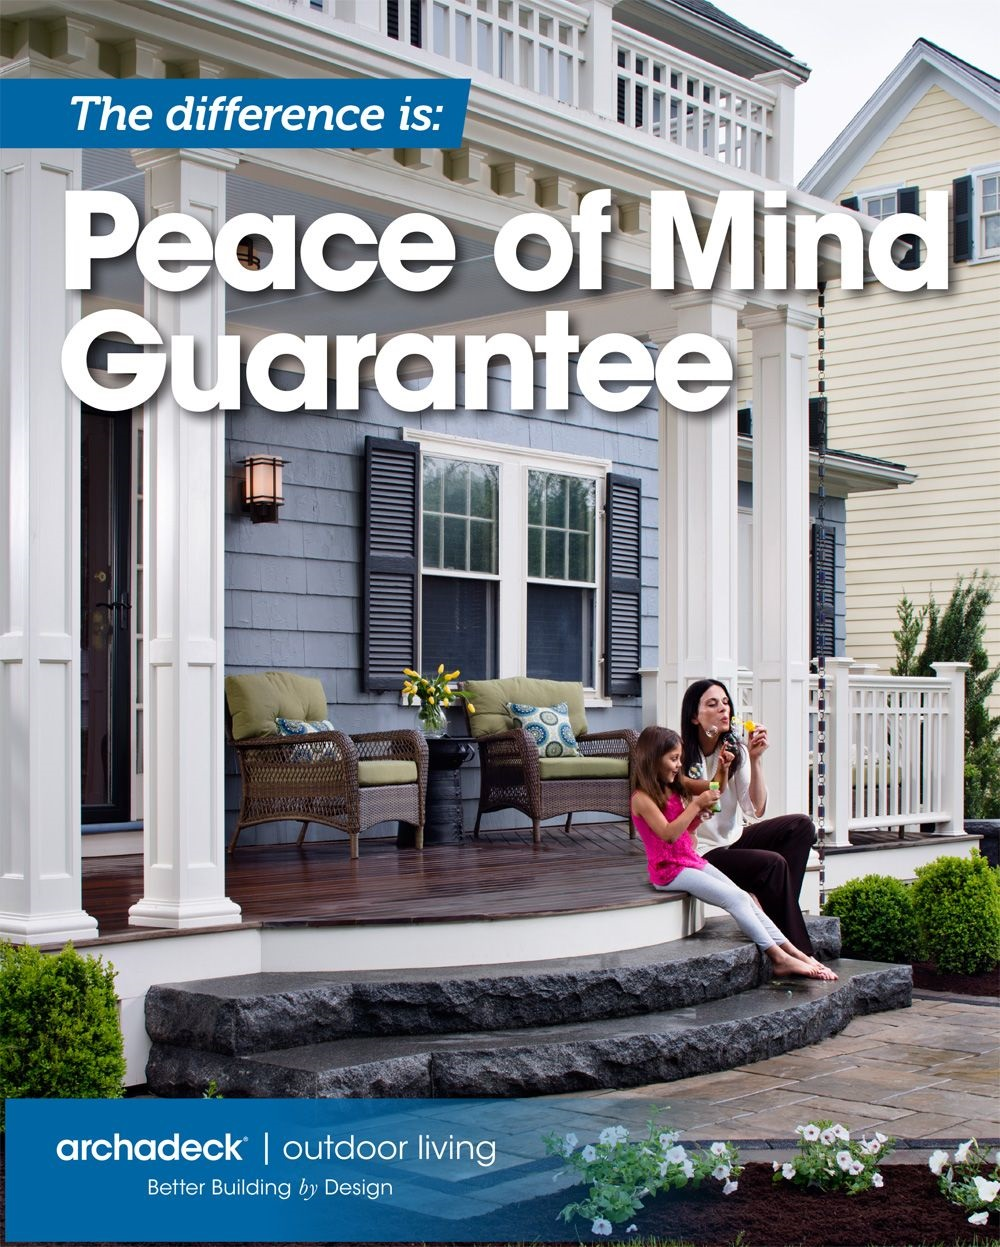 Our-unique-completion-guarantee-provides-peace-of-mind-knowing-your-job-is-completed-no-matter-the-circumstances